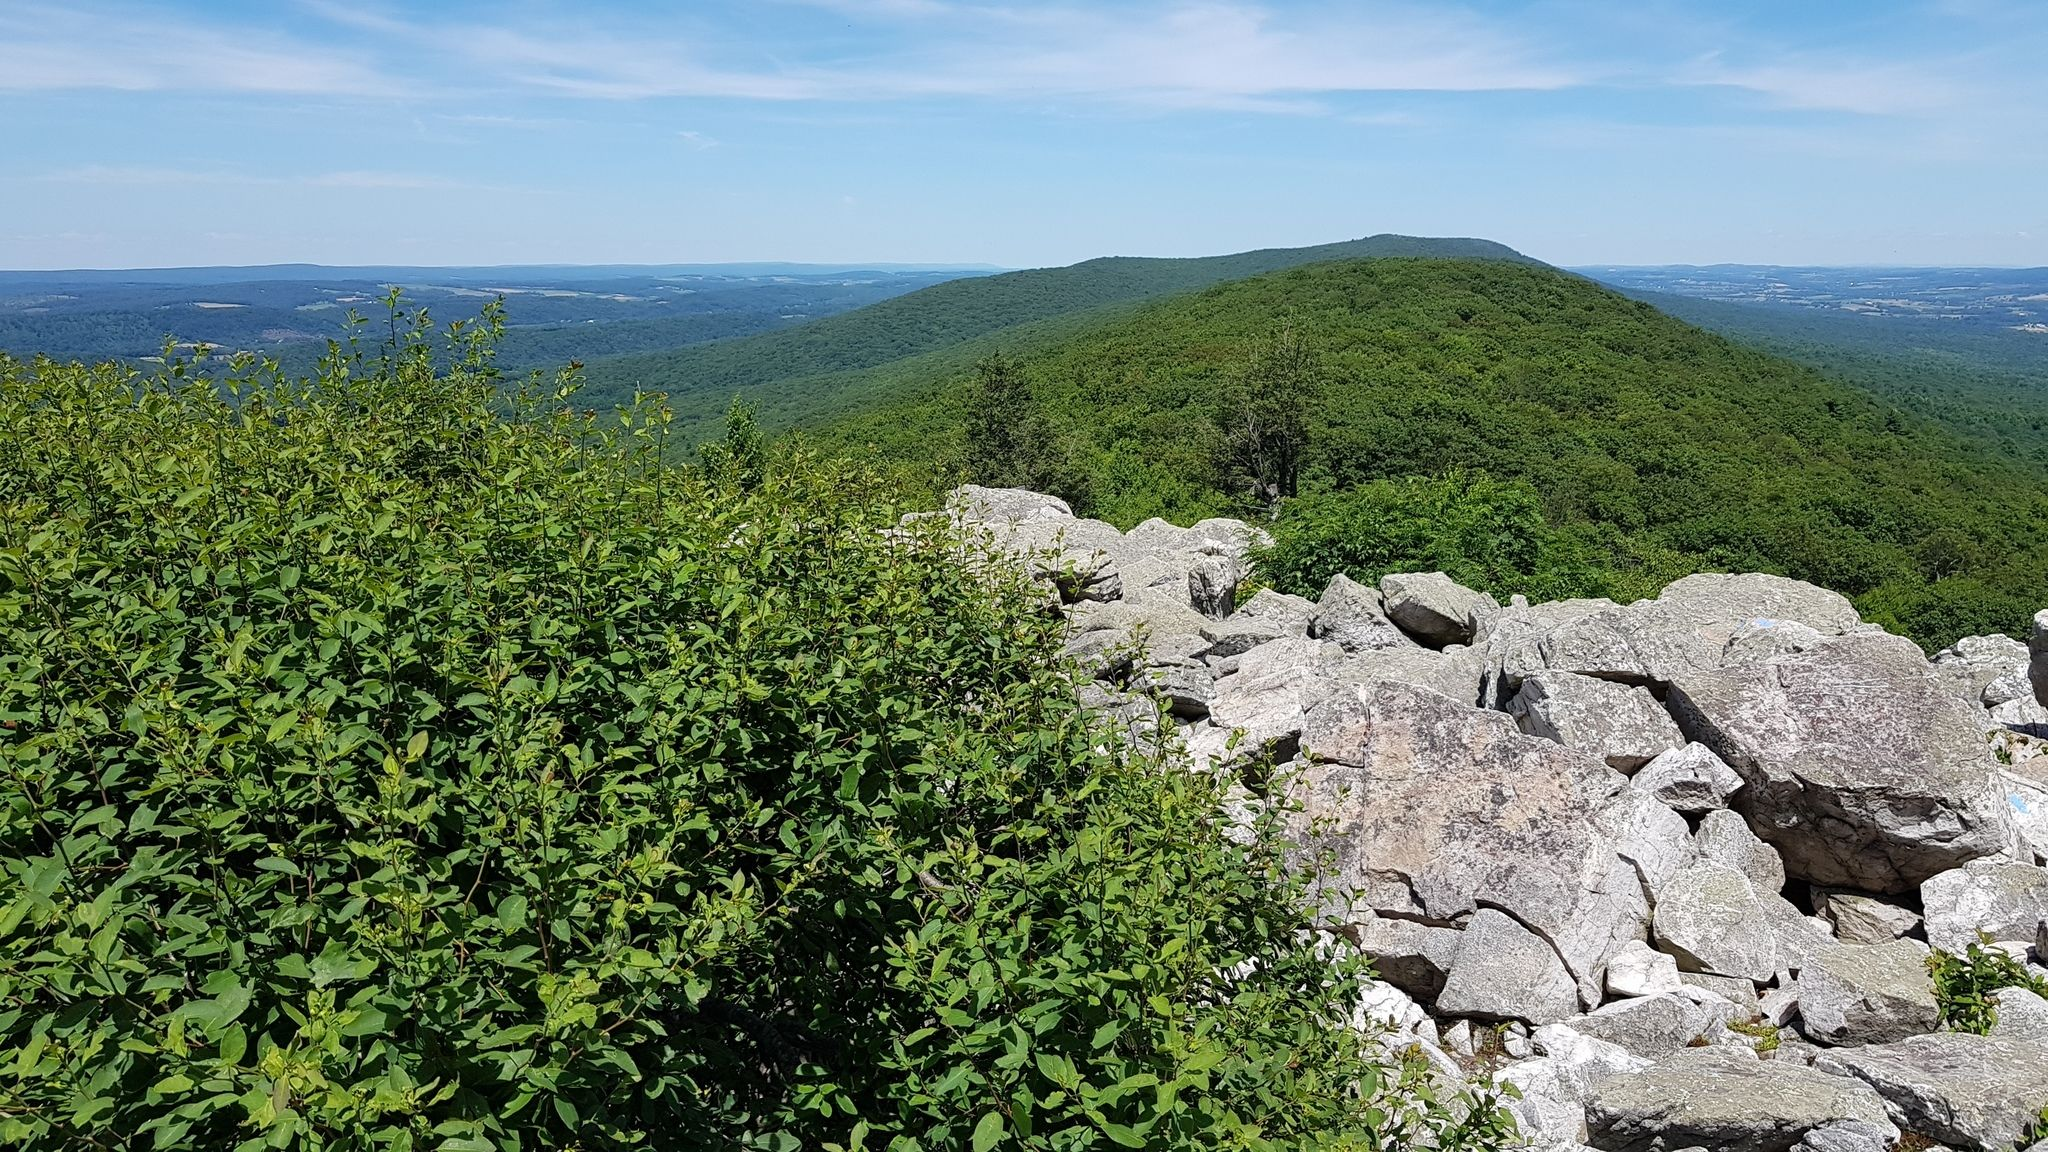 Best Trails in Hawk Mountain Sanctuary - Pennsylvania ... on regions of texas with cities, cartoon sanctuary cities, map of state of georgia cities, stop sanctuary cities, ohio map with cities, map of edith read sanctuary, tent city in sanctuary cities, california cities, map of memphis cities,